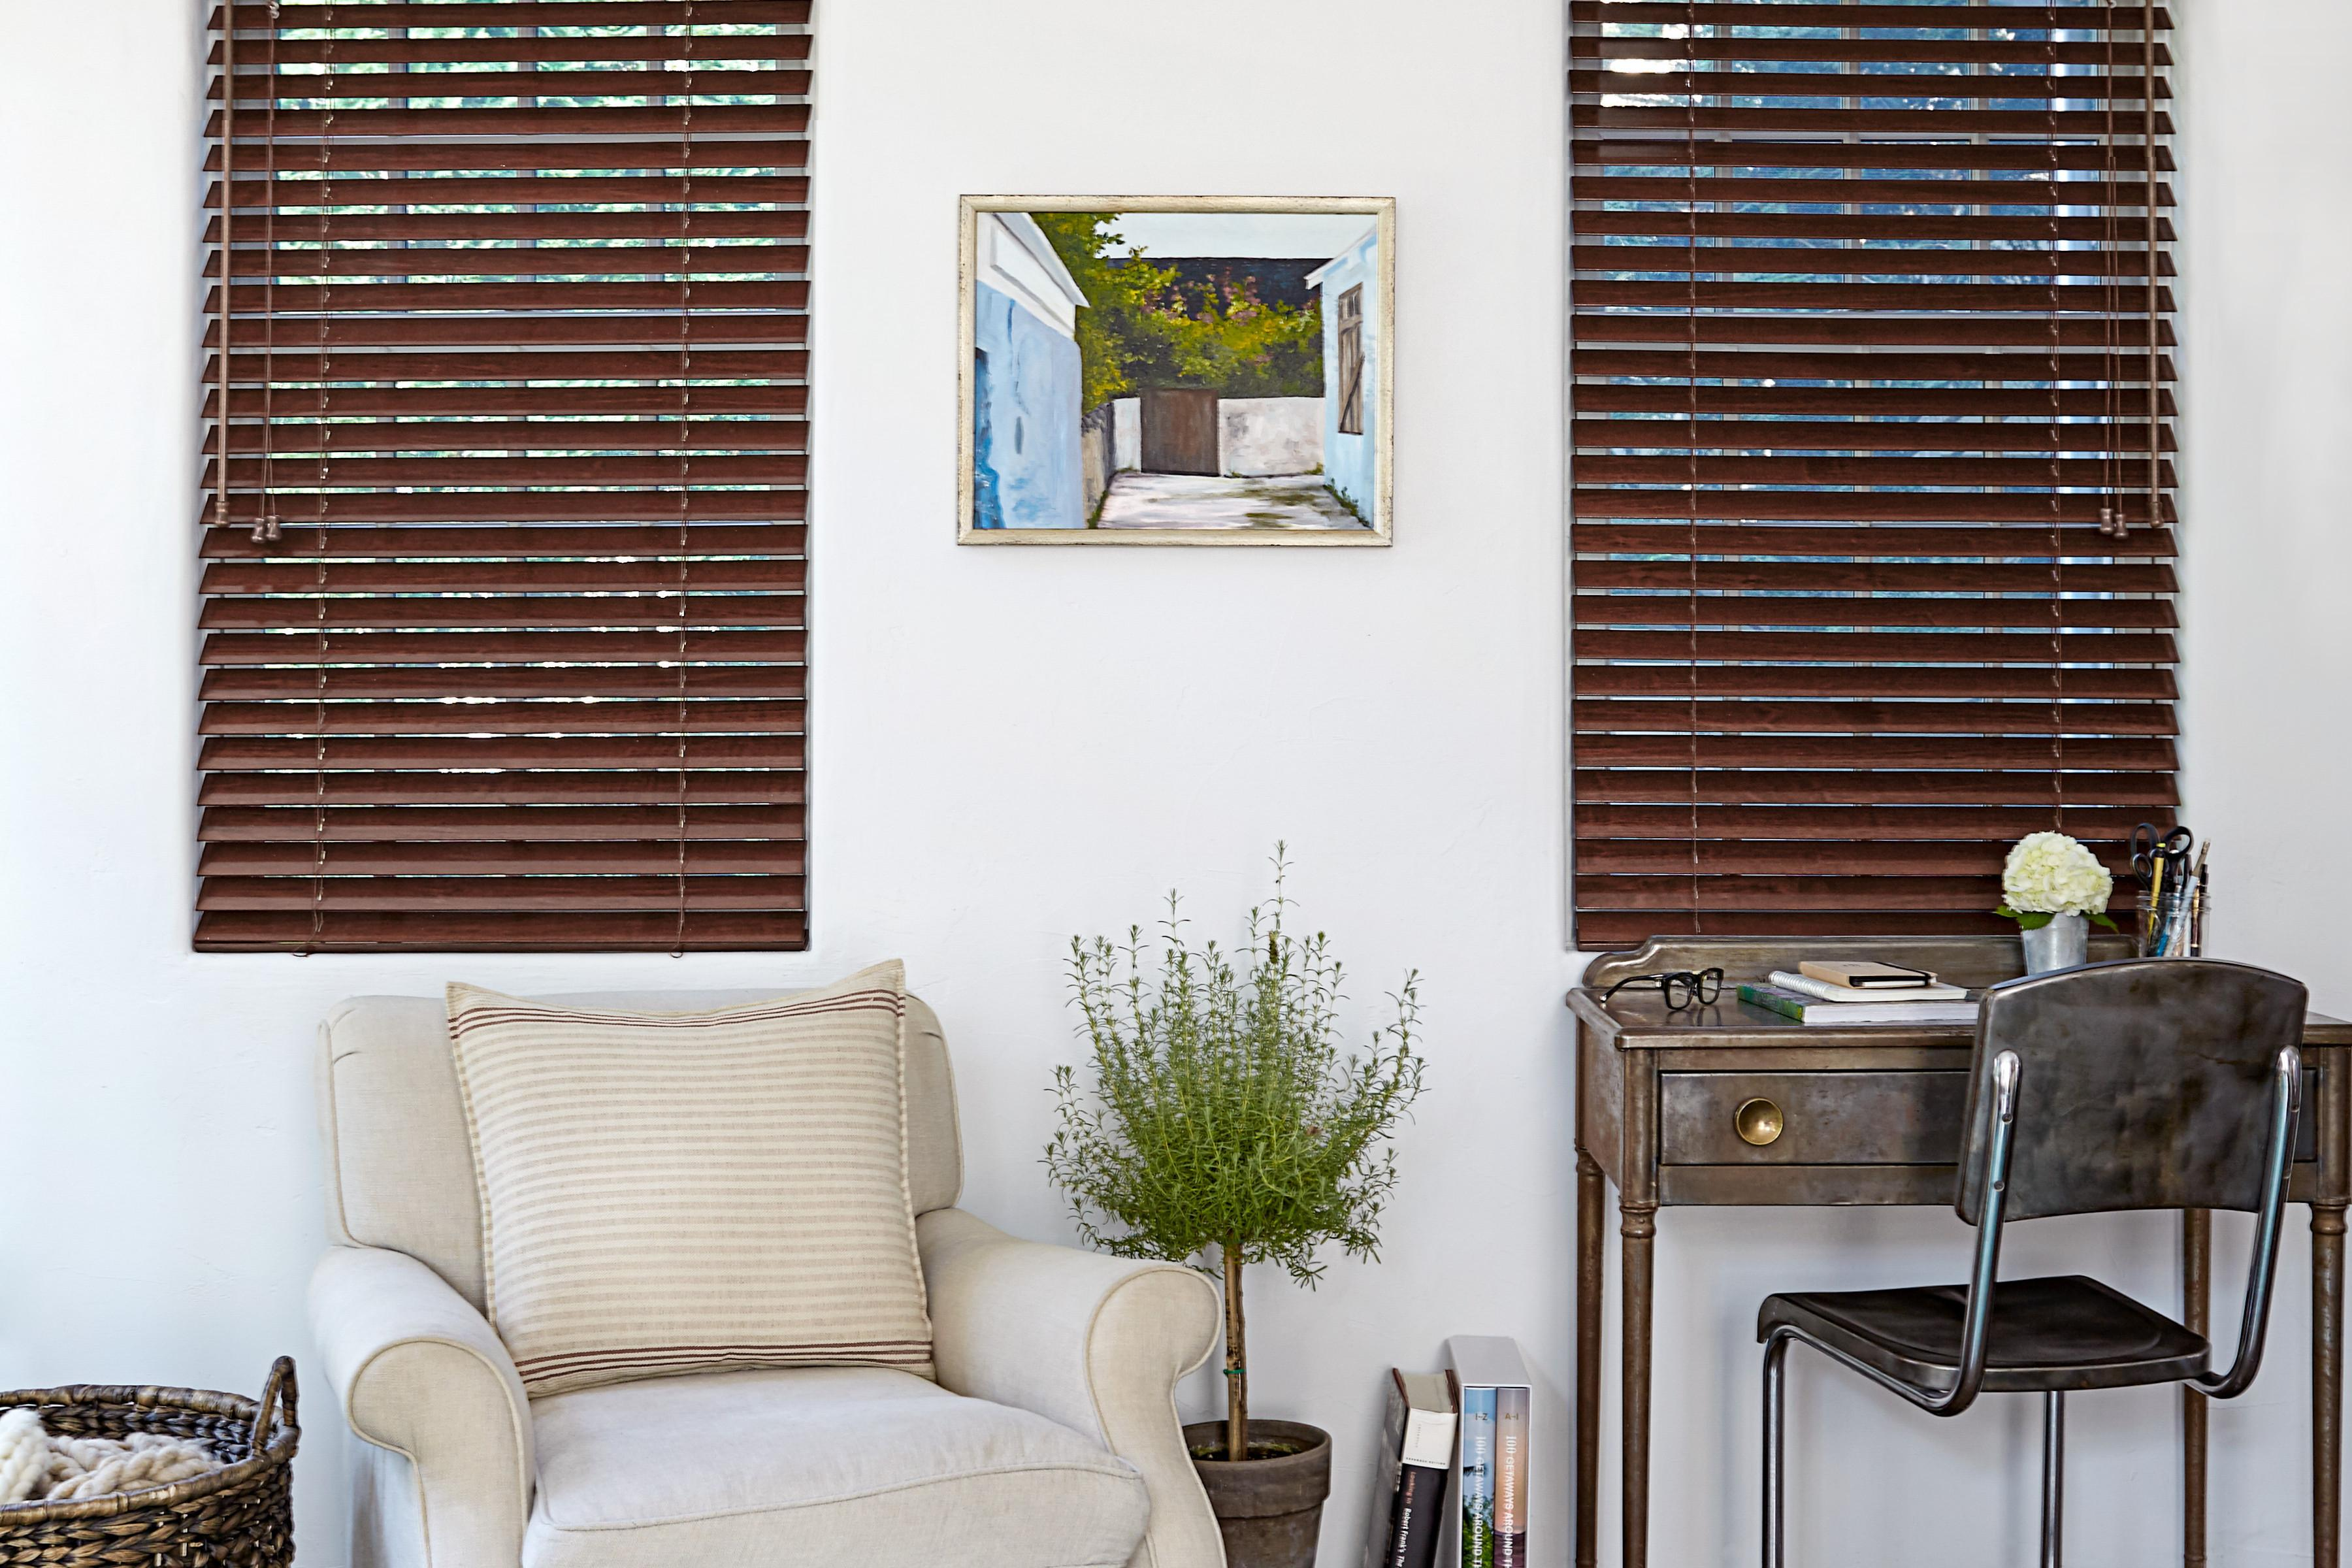 Dark brown real wood blinds cover two windows and lend warmth to a room with white walls, a beige upholstered chair and a small writing desk.